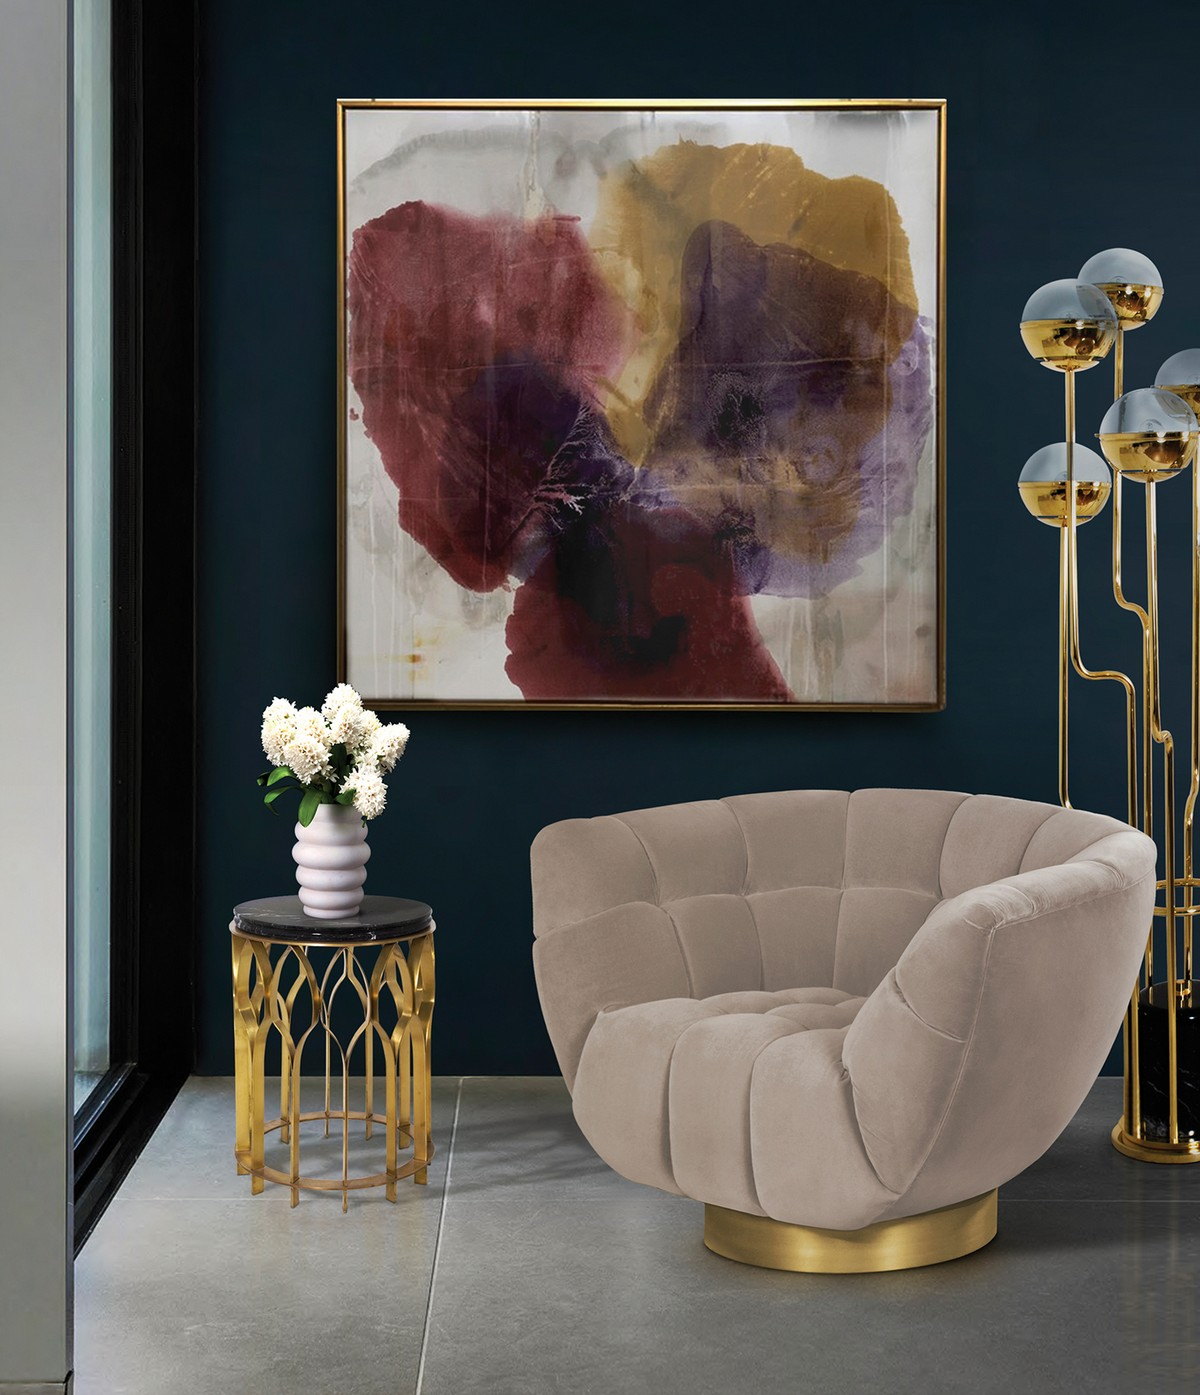 Maison et Objet 2019: Luxury Armchairs at Covet House maison et objet 2019 Maison et Objet 2019: Luxury Armchairs at Covet House essex